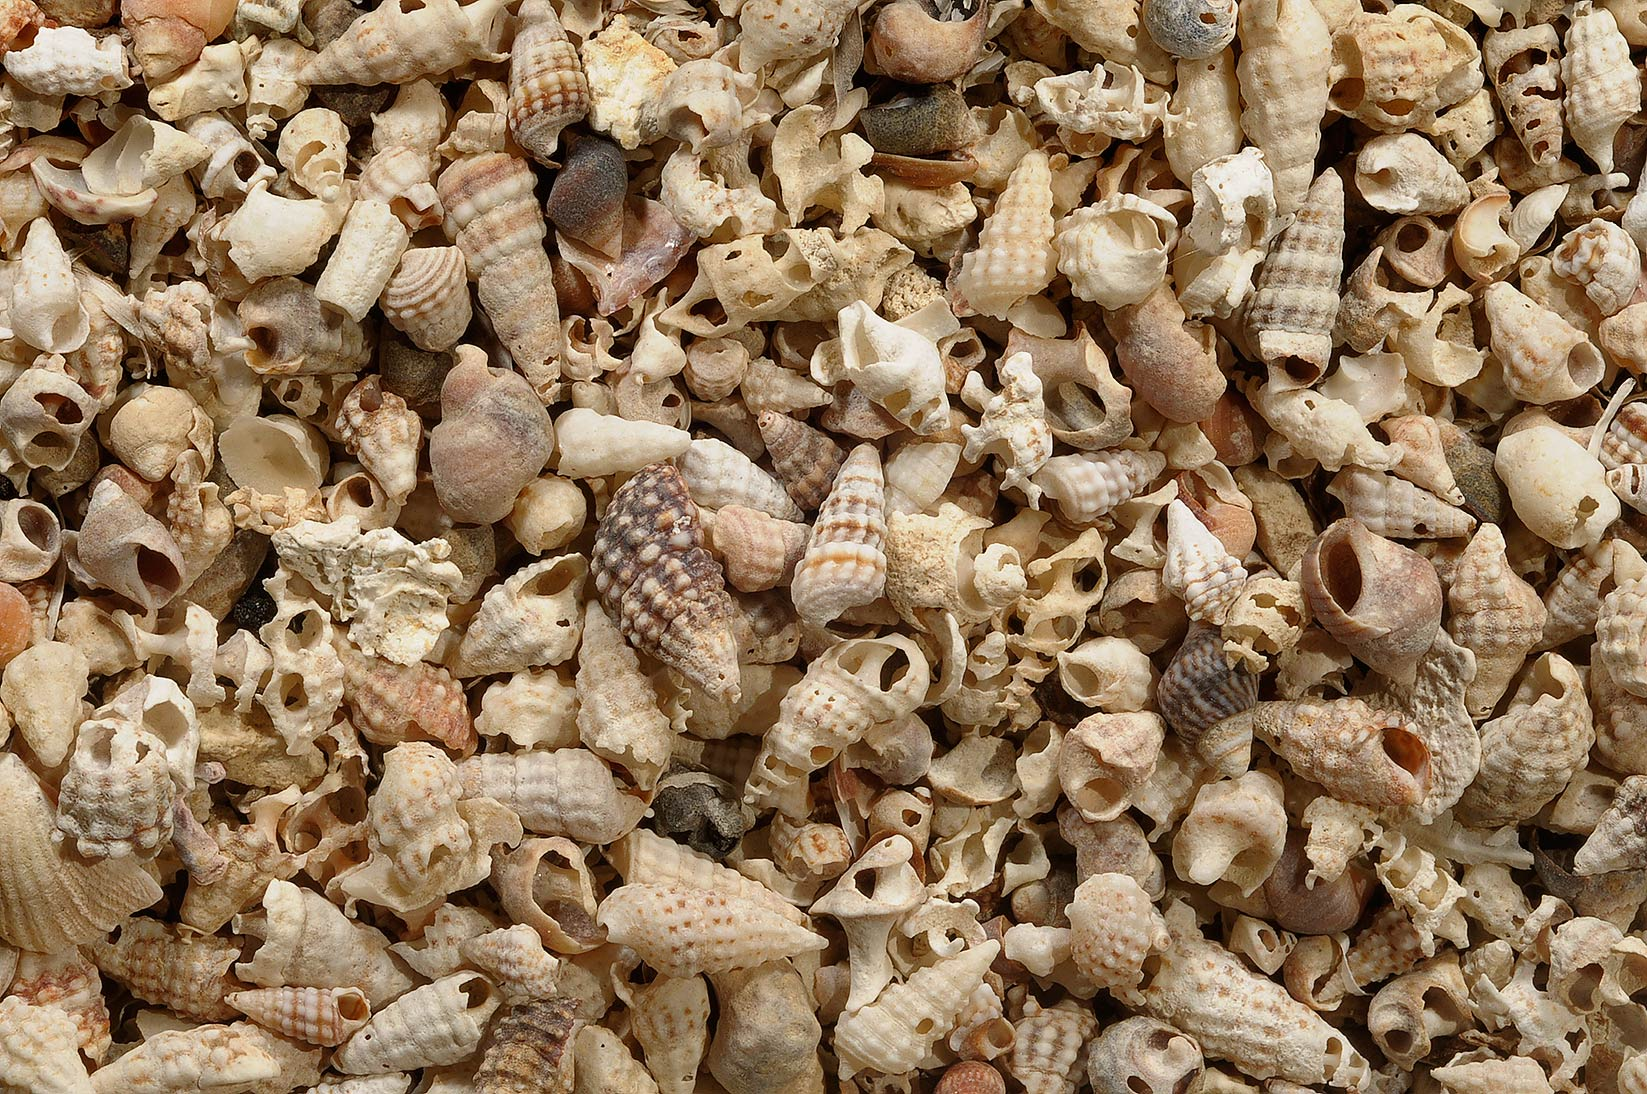 Accumulation of shells of sea snails in Al Aaliya Island (Jazirat al Aliyah). Qatar